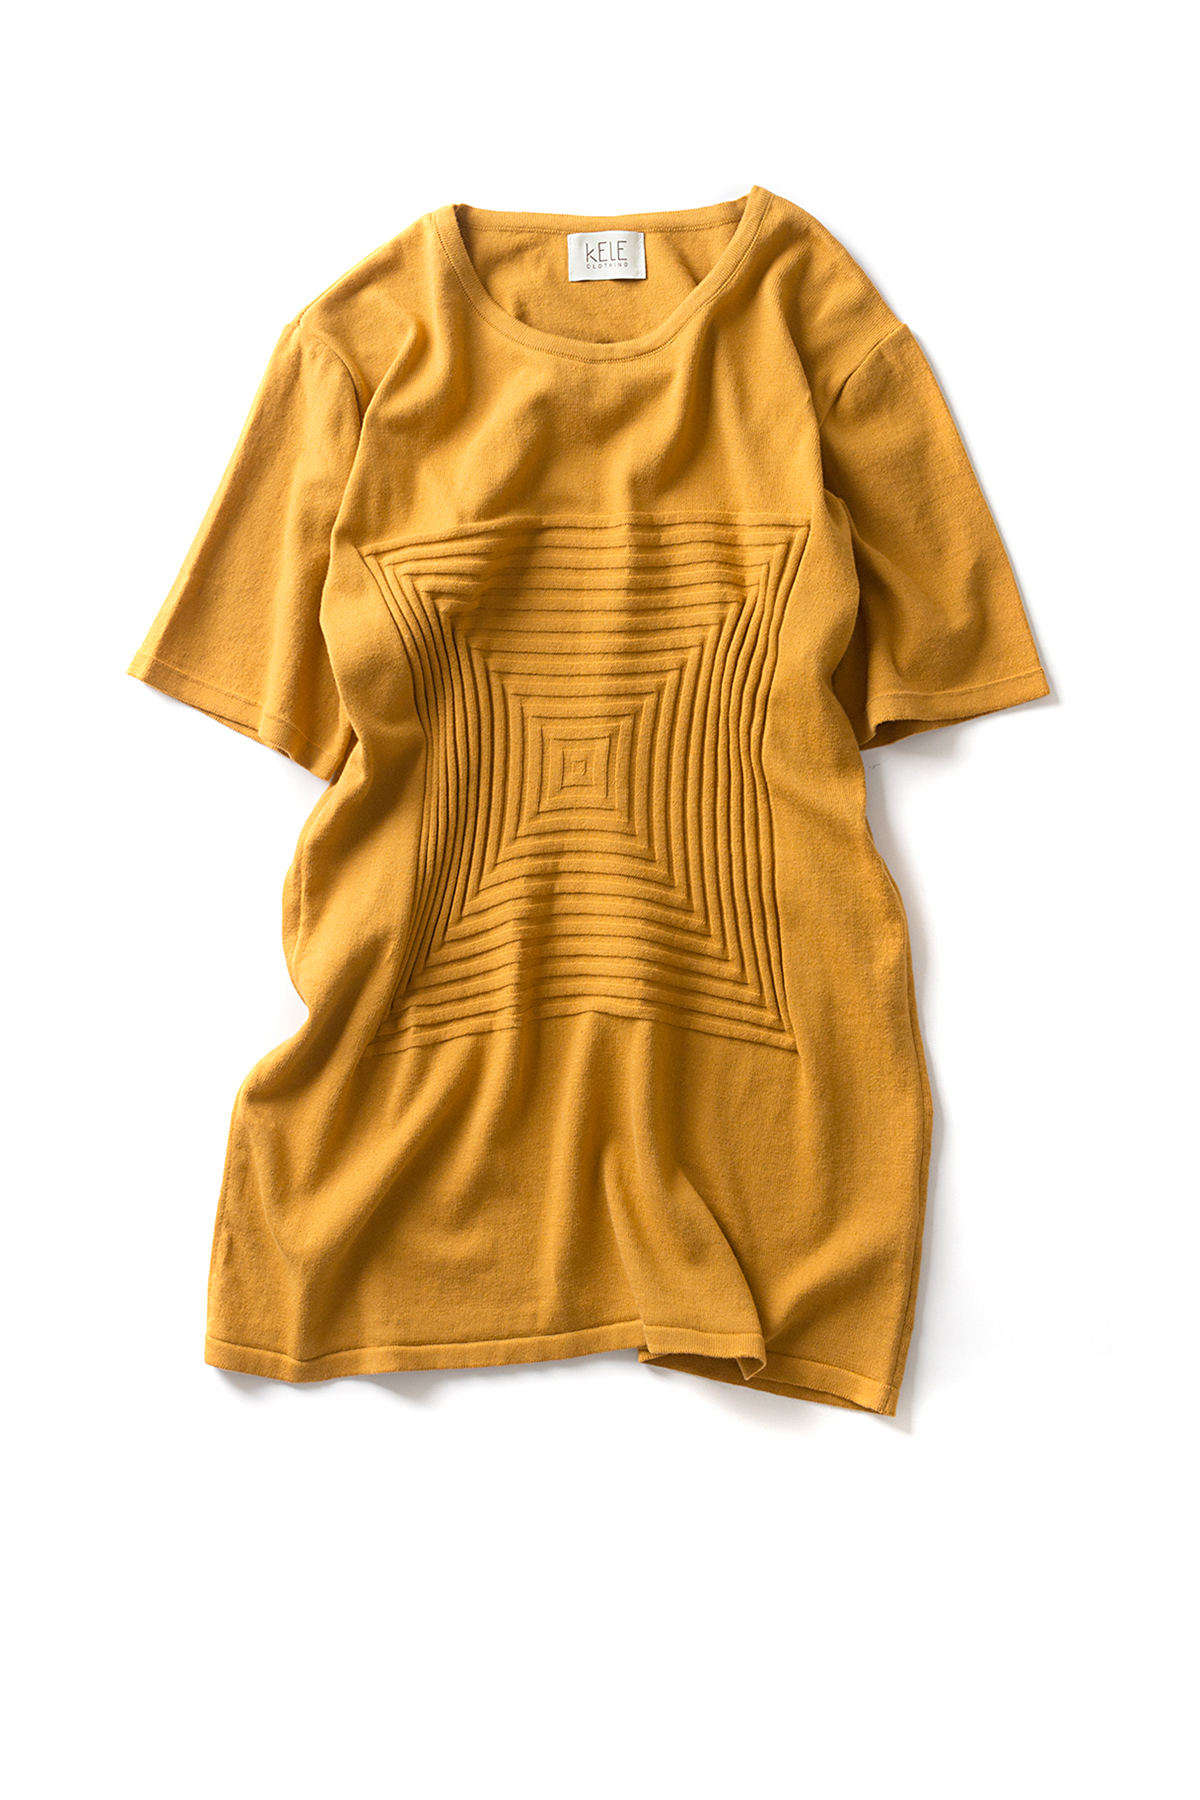 KELE Clothing : ORIZA (Gold)